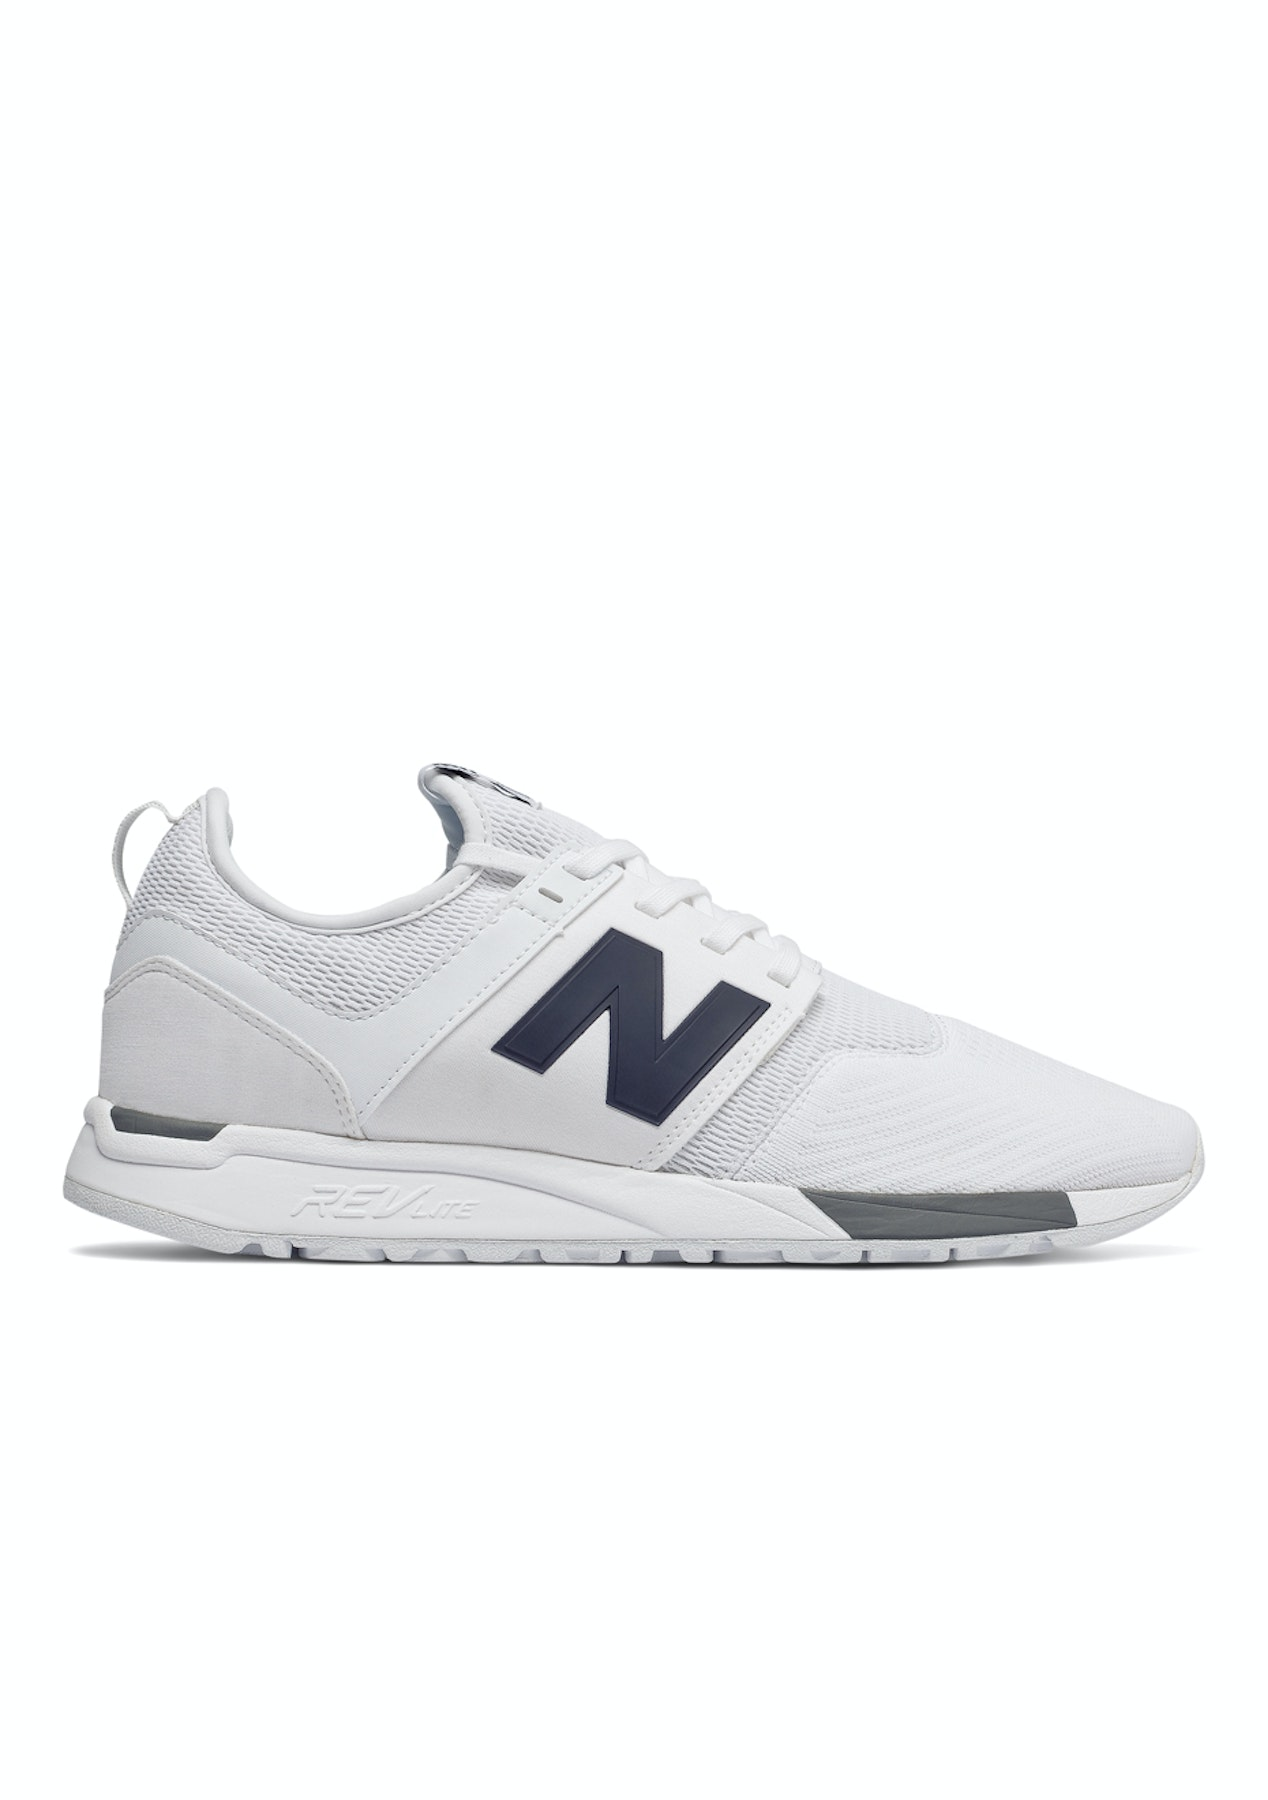 323ec63cb26 New Balance Mens - 247 Classic - White with Grey   Navy - Boxing Day New  Balance - Onceit